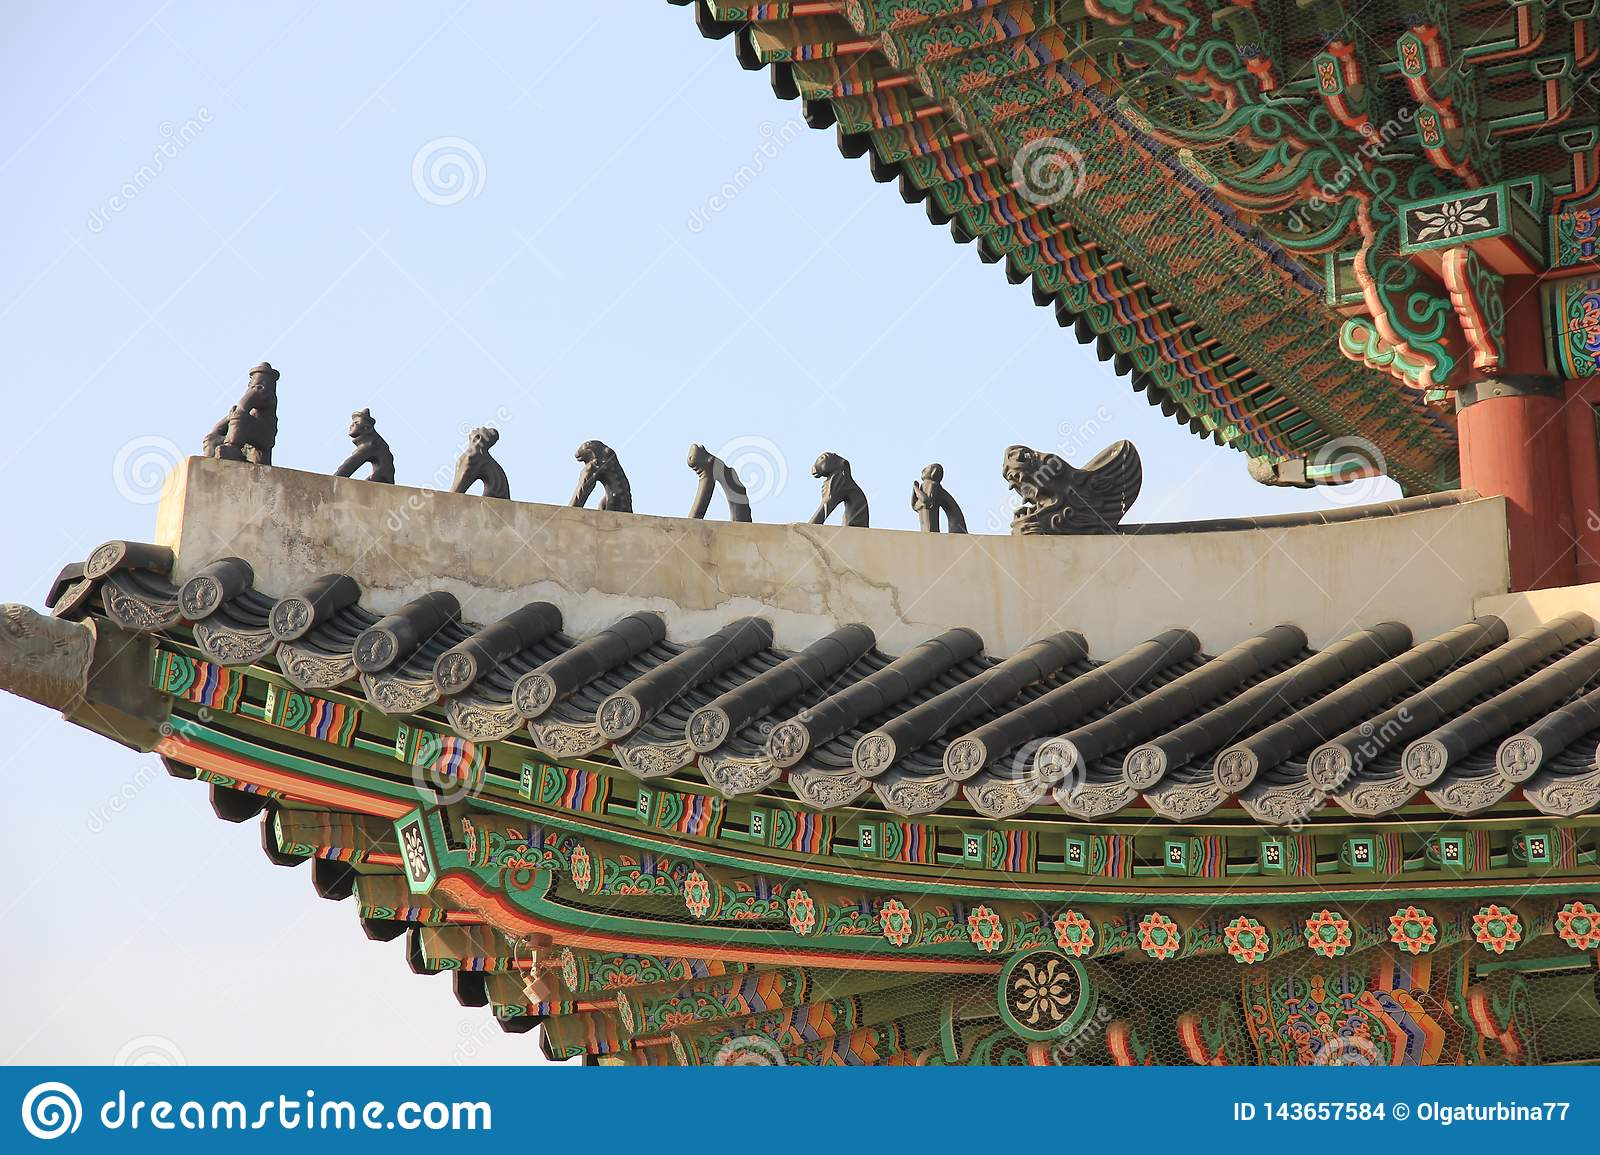 Gyeongbokgung Palace, Korean traditional roof,Japsang figures,Seoul,South Korea